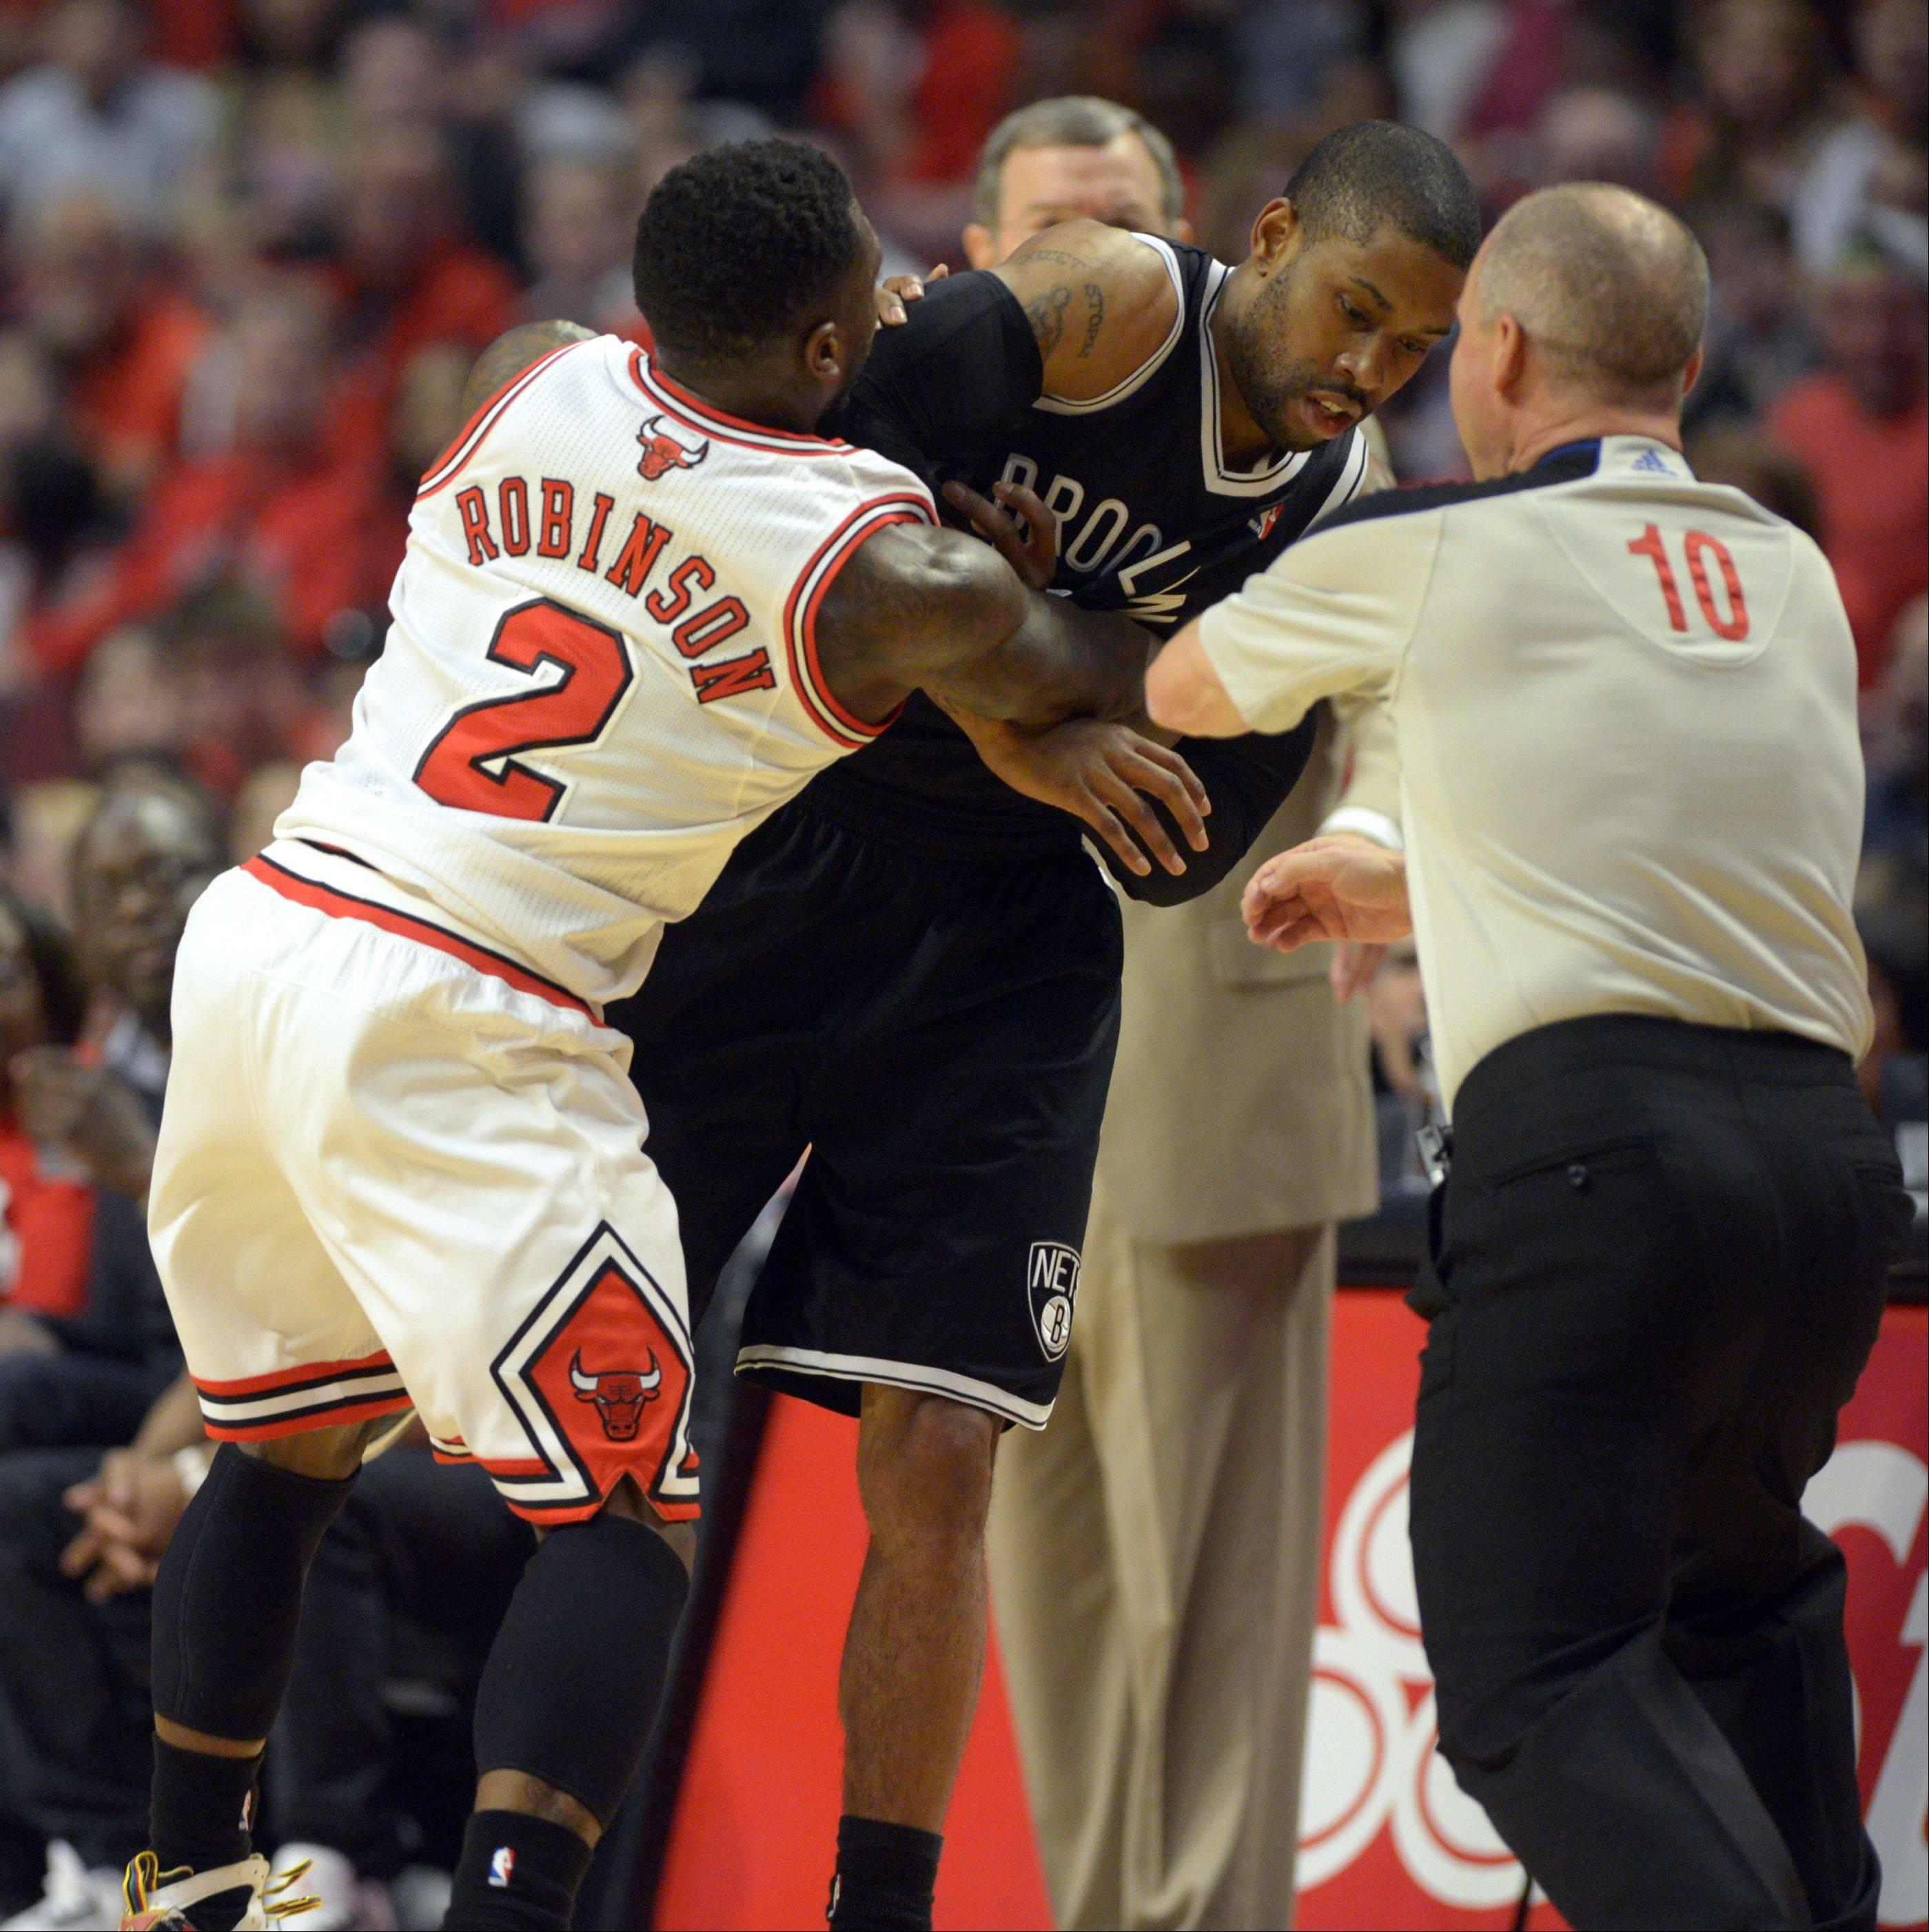 The Bulls Nate Robinson, left, and Brooklyn's C.J. Watson mix it up after fighting for the ball in the first half Saturday during game 4 of the first round playoff game against the Brooklyn Nets at the United Center. The Bulls won in triple overtime 142-134